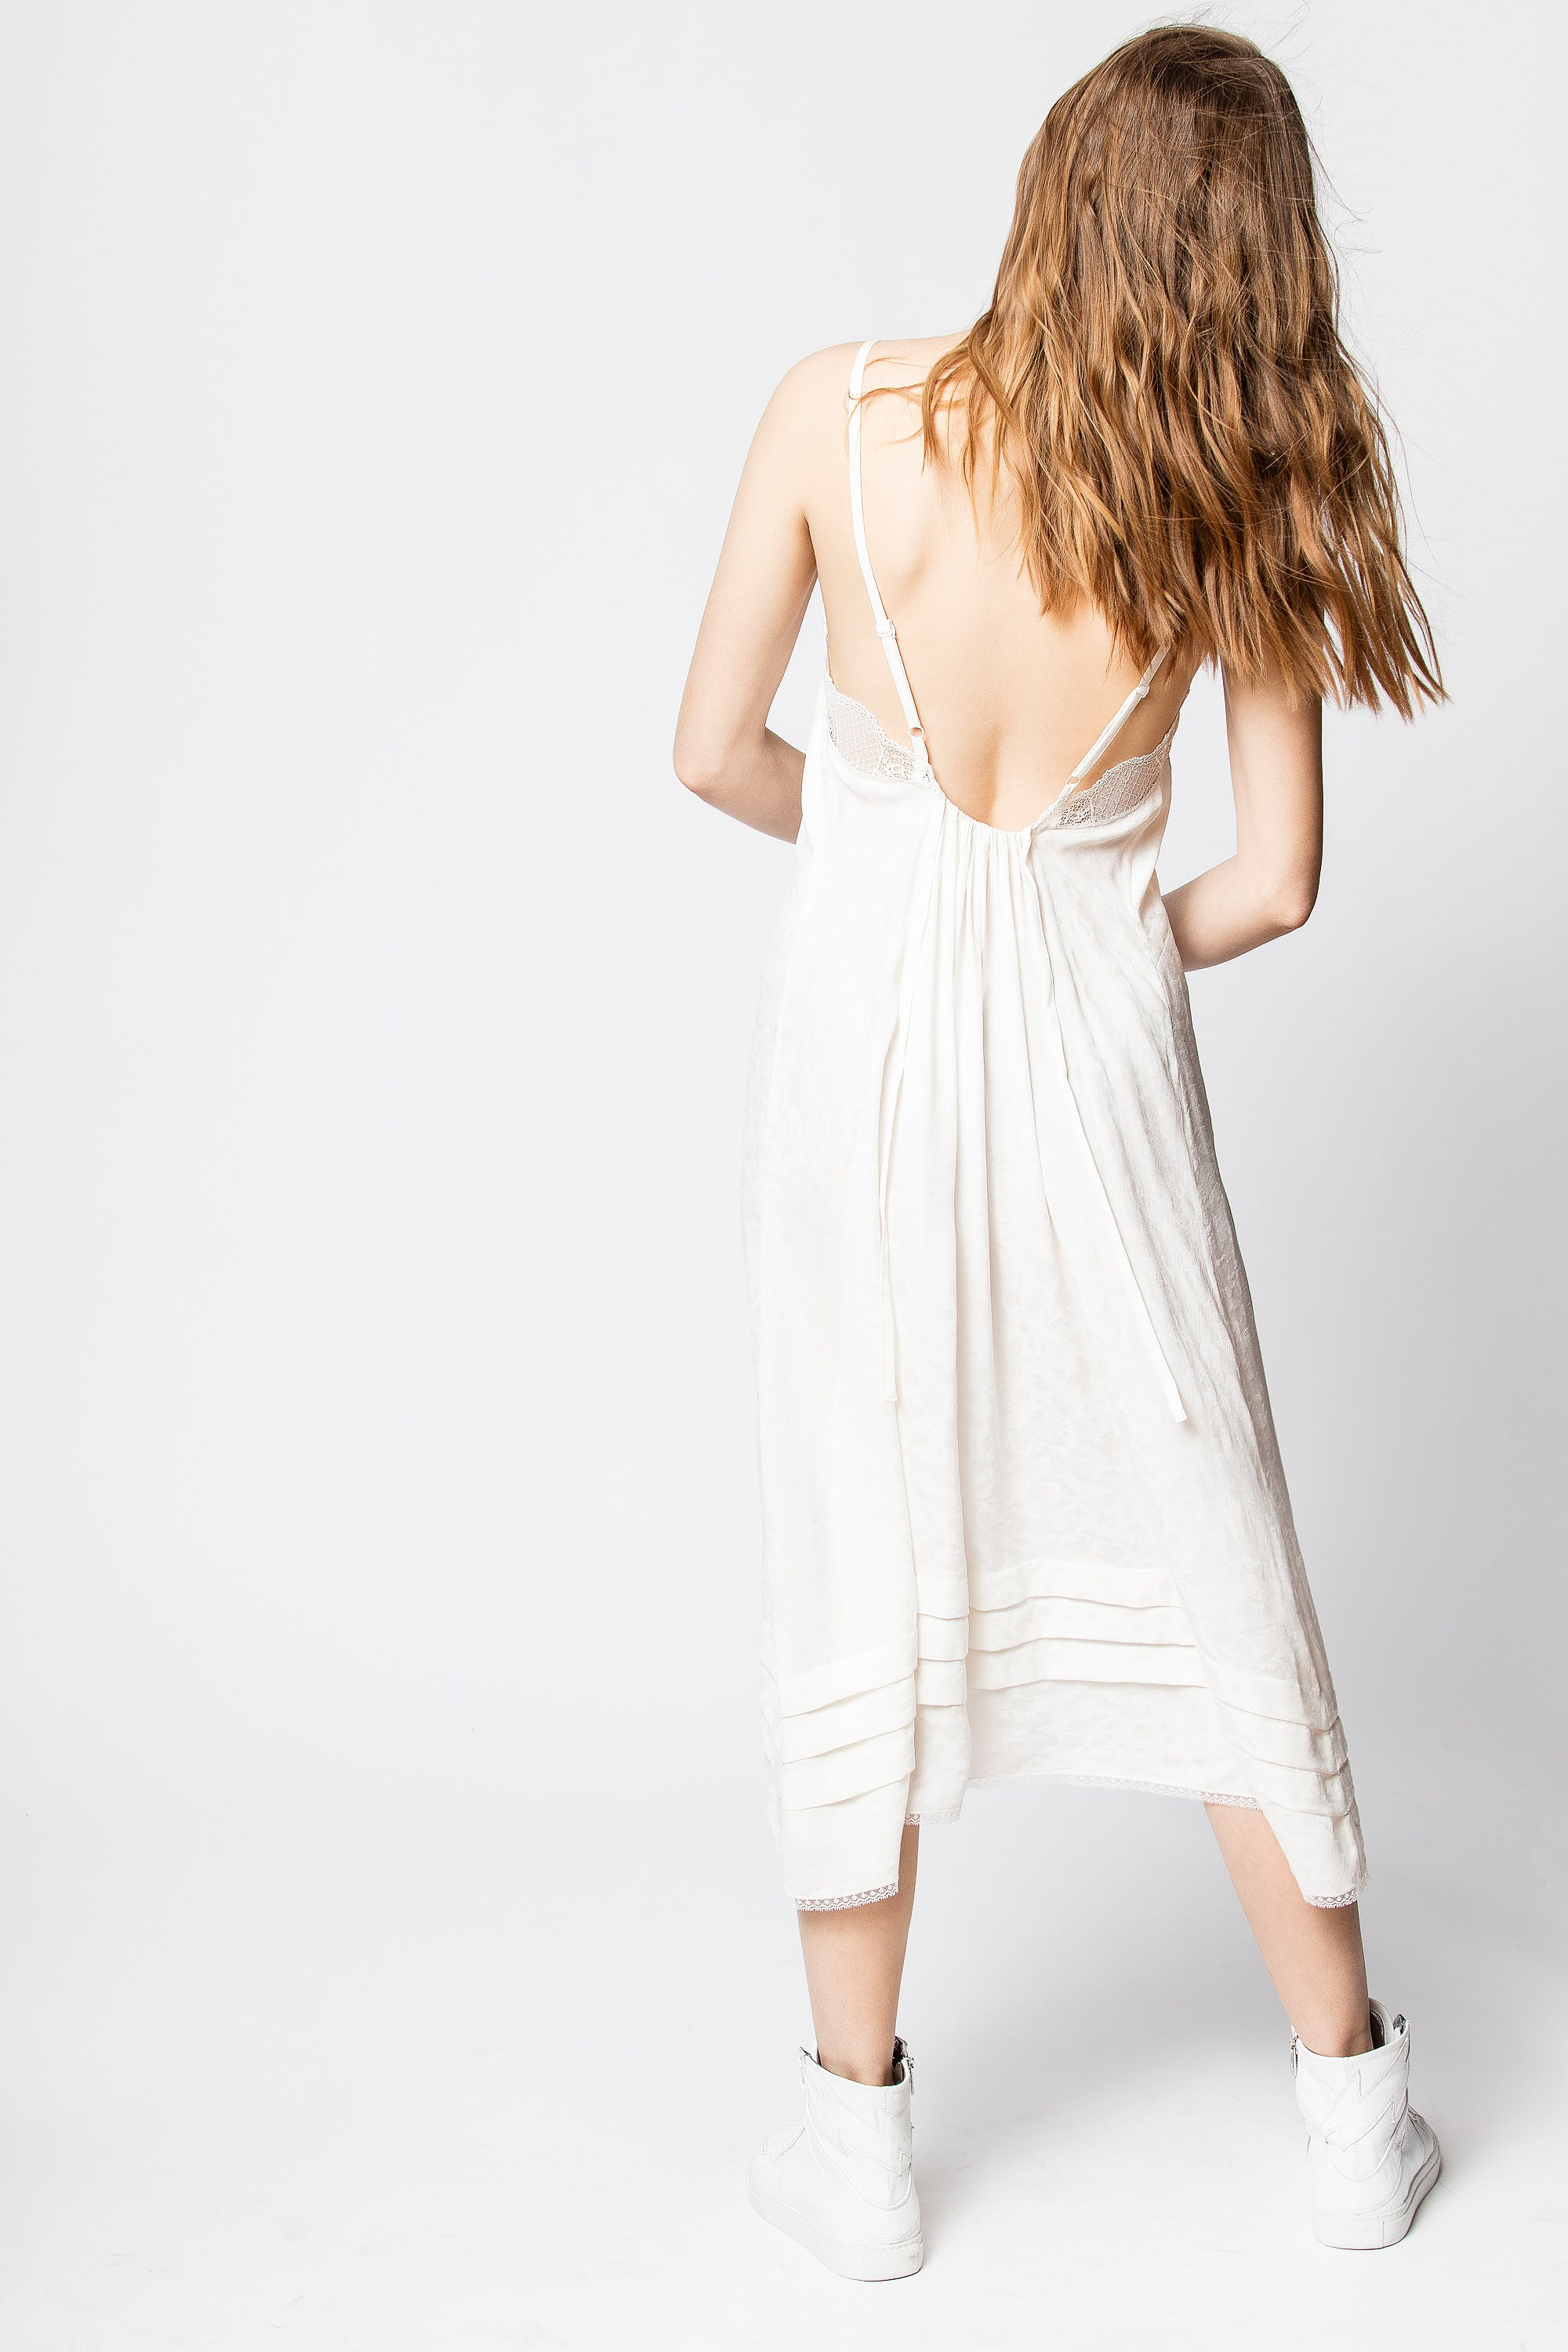 Zadig & VoltaireReally Jac Leo Dress back view